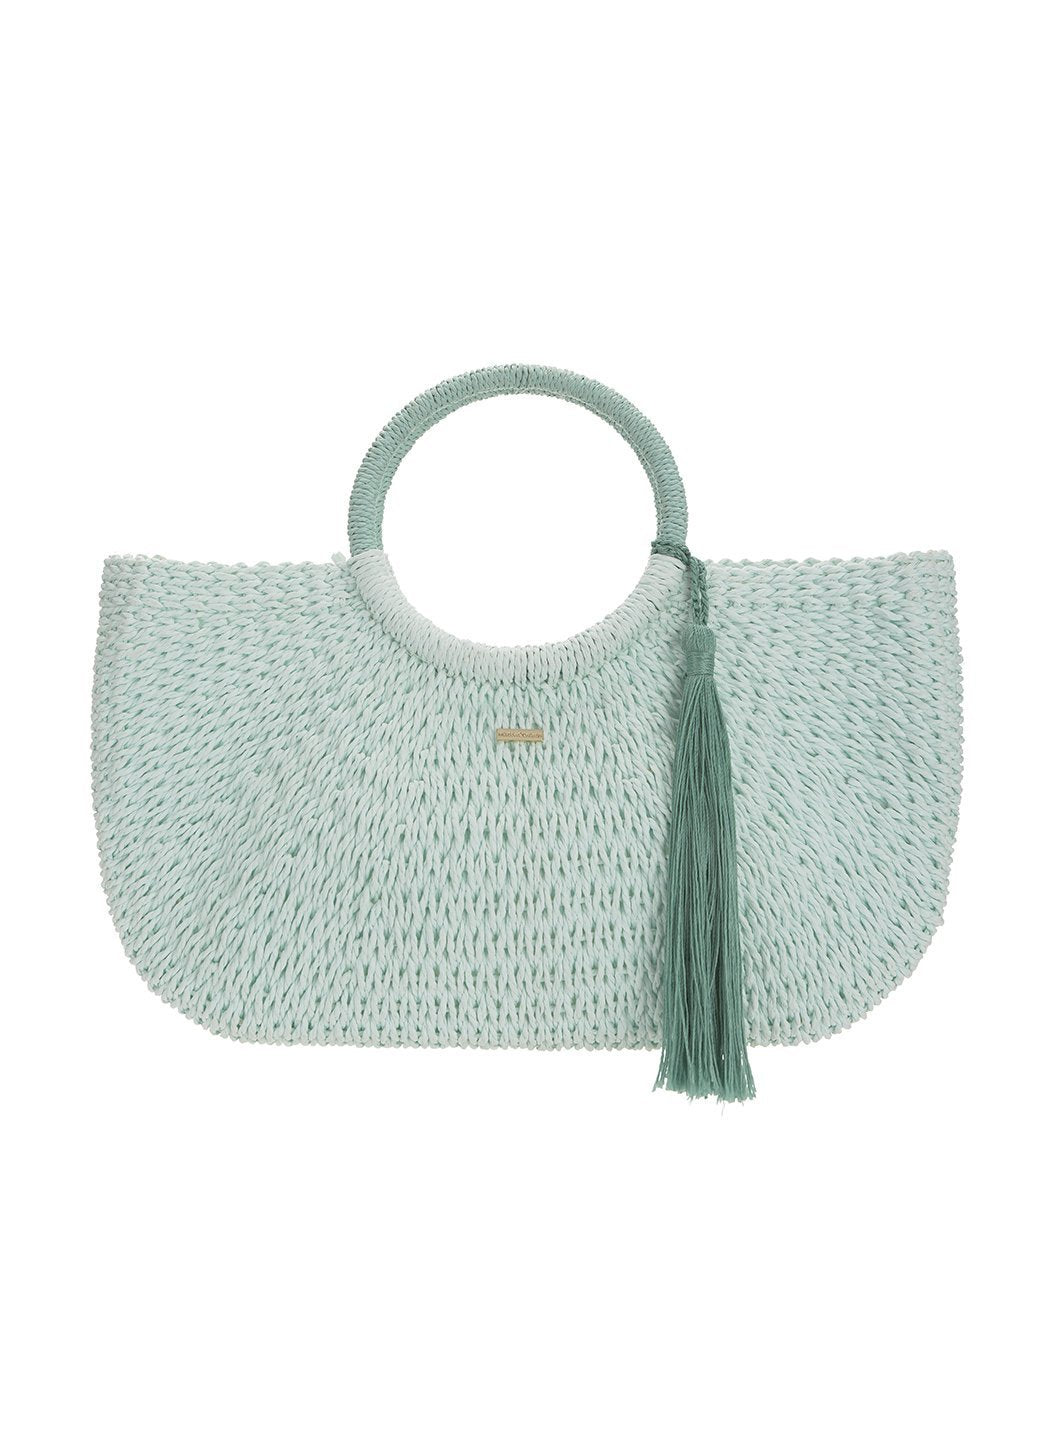 sorrento woven basket bag mint 2019